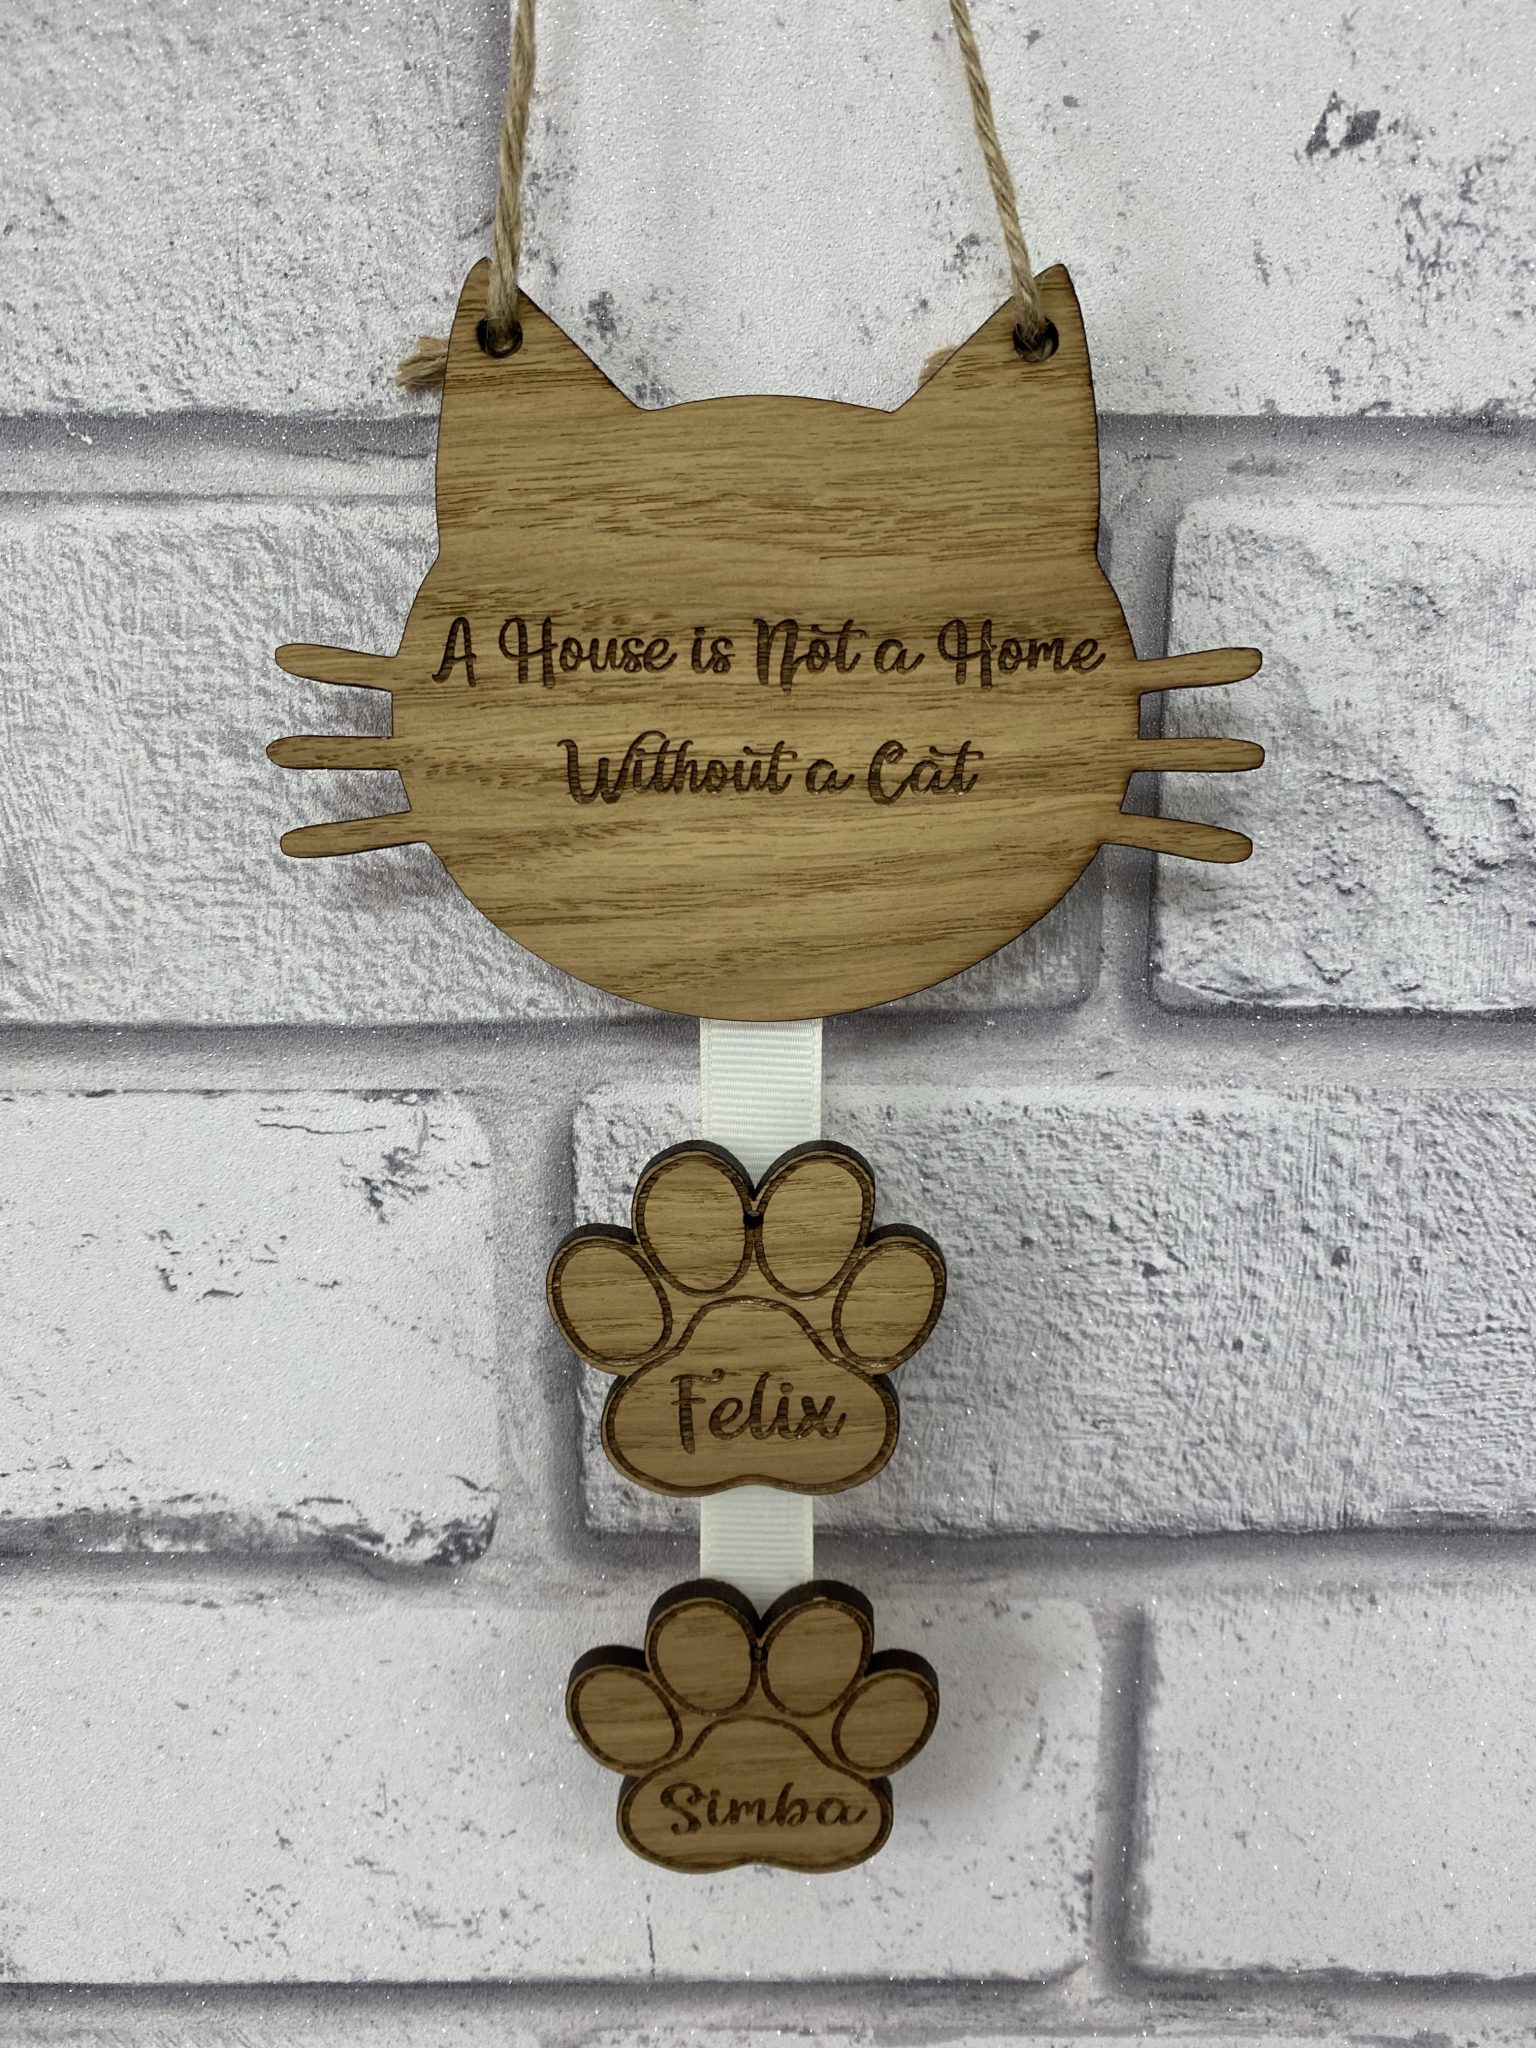 Little Gifts With Love - Personalised Rustic A House is not a Home Without a Cat Wooden Wall Hanging Sign (Copy)